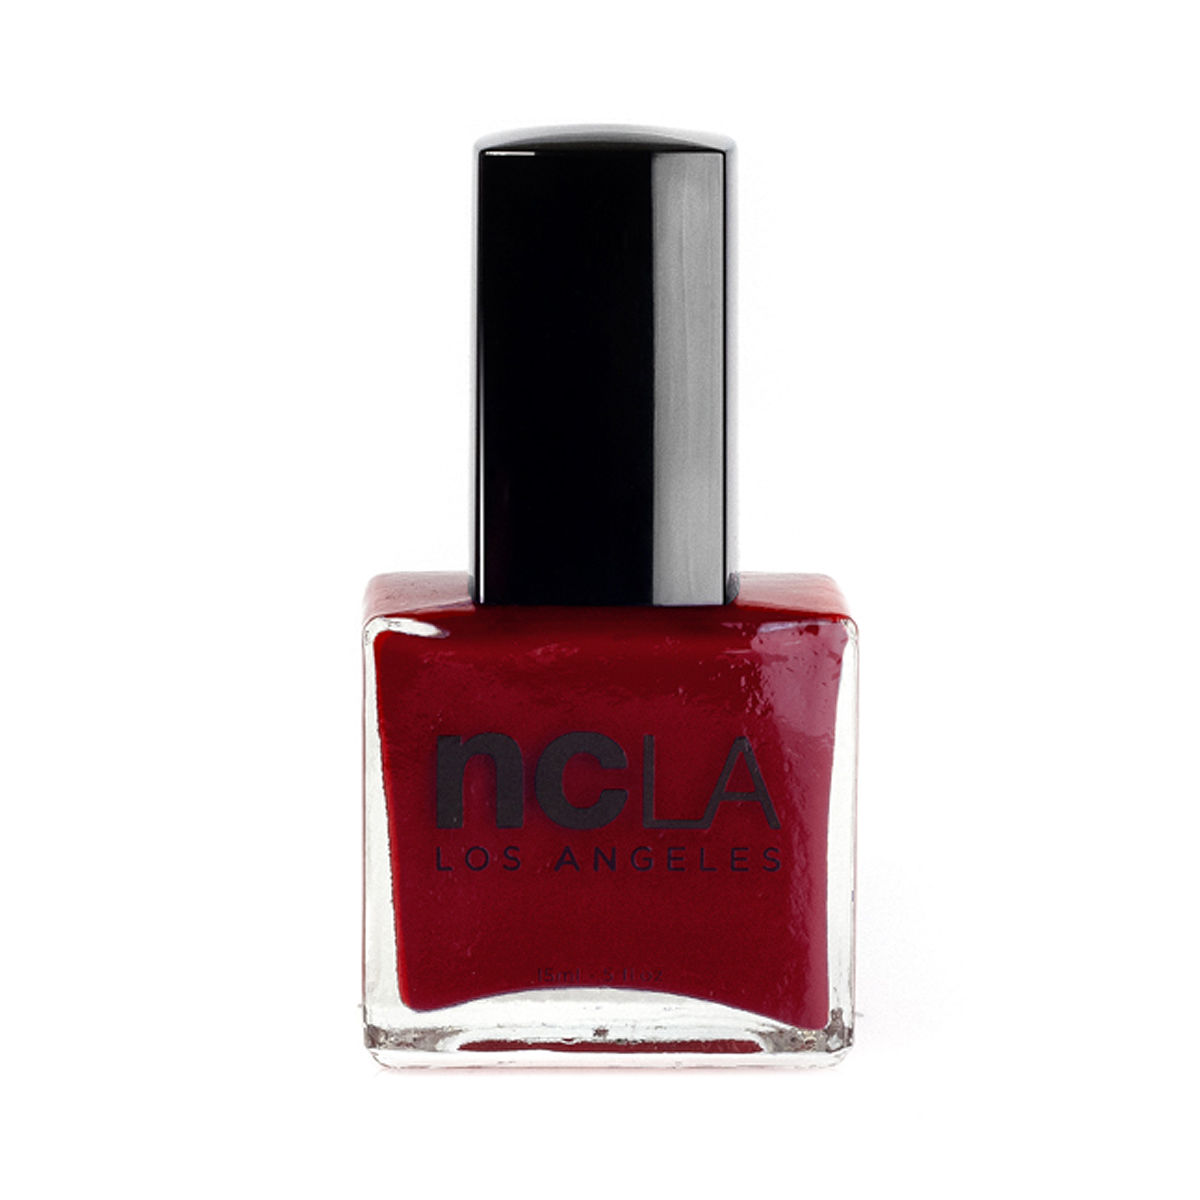 Ncla Rodeo Drive Royalty Nail Lacquer Thrive Market